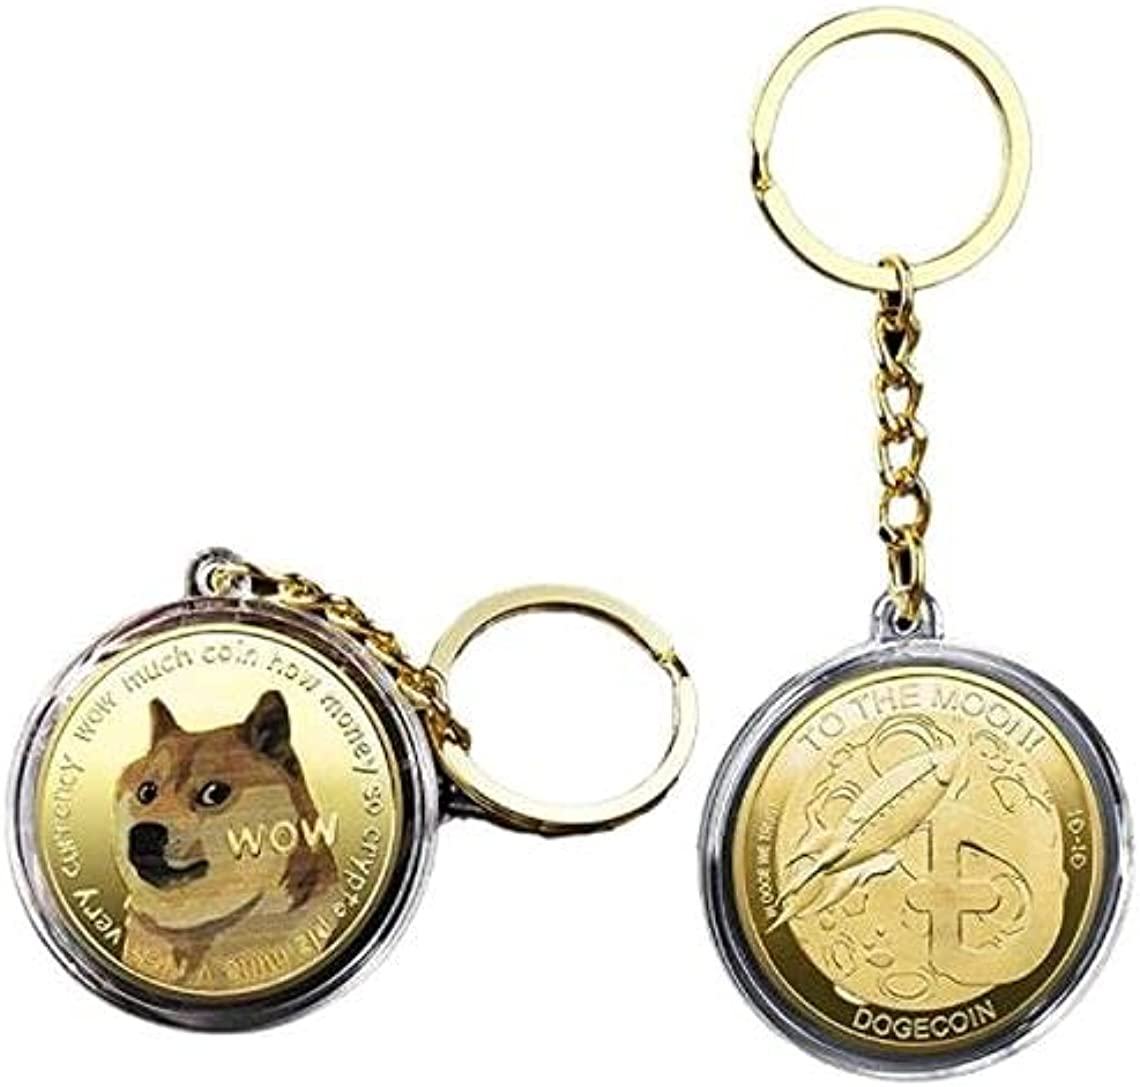 Gold DOGECOIN Keychain Cryptocurrency Coin To The Moon HODL Dogefather - PLAYFUL SHIBA INU - DOGE